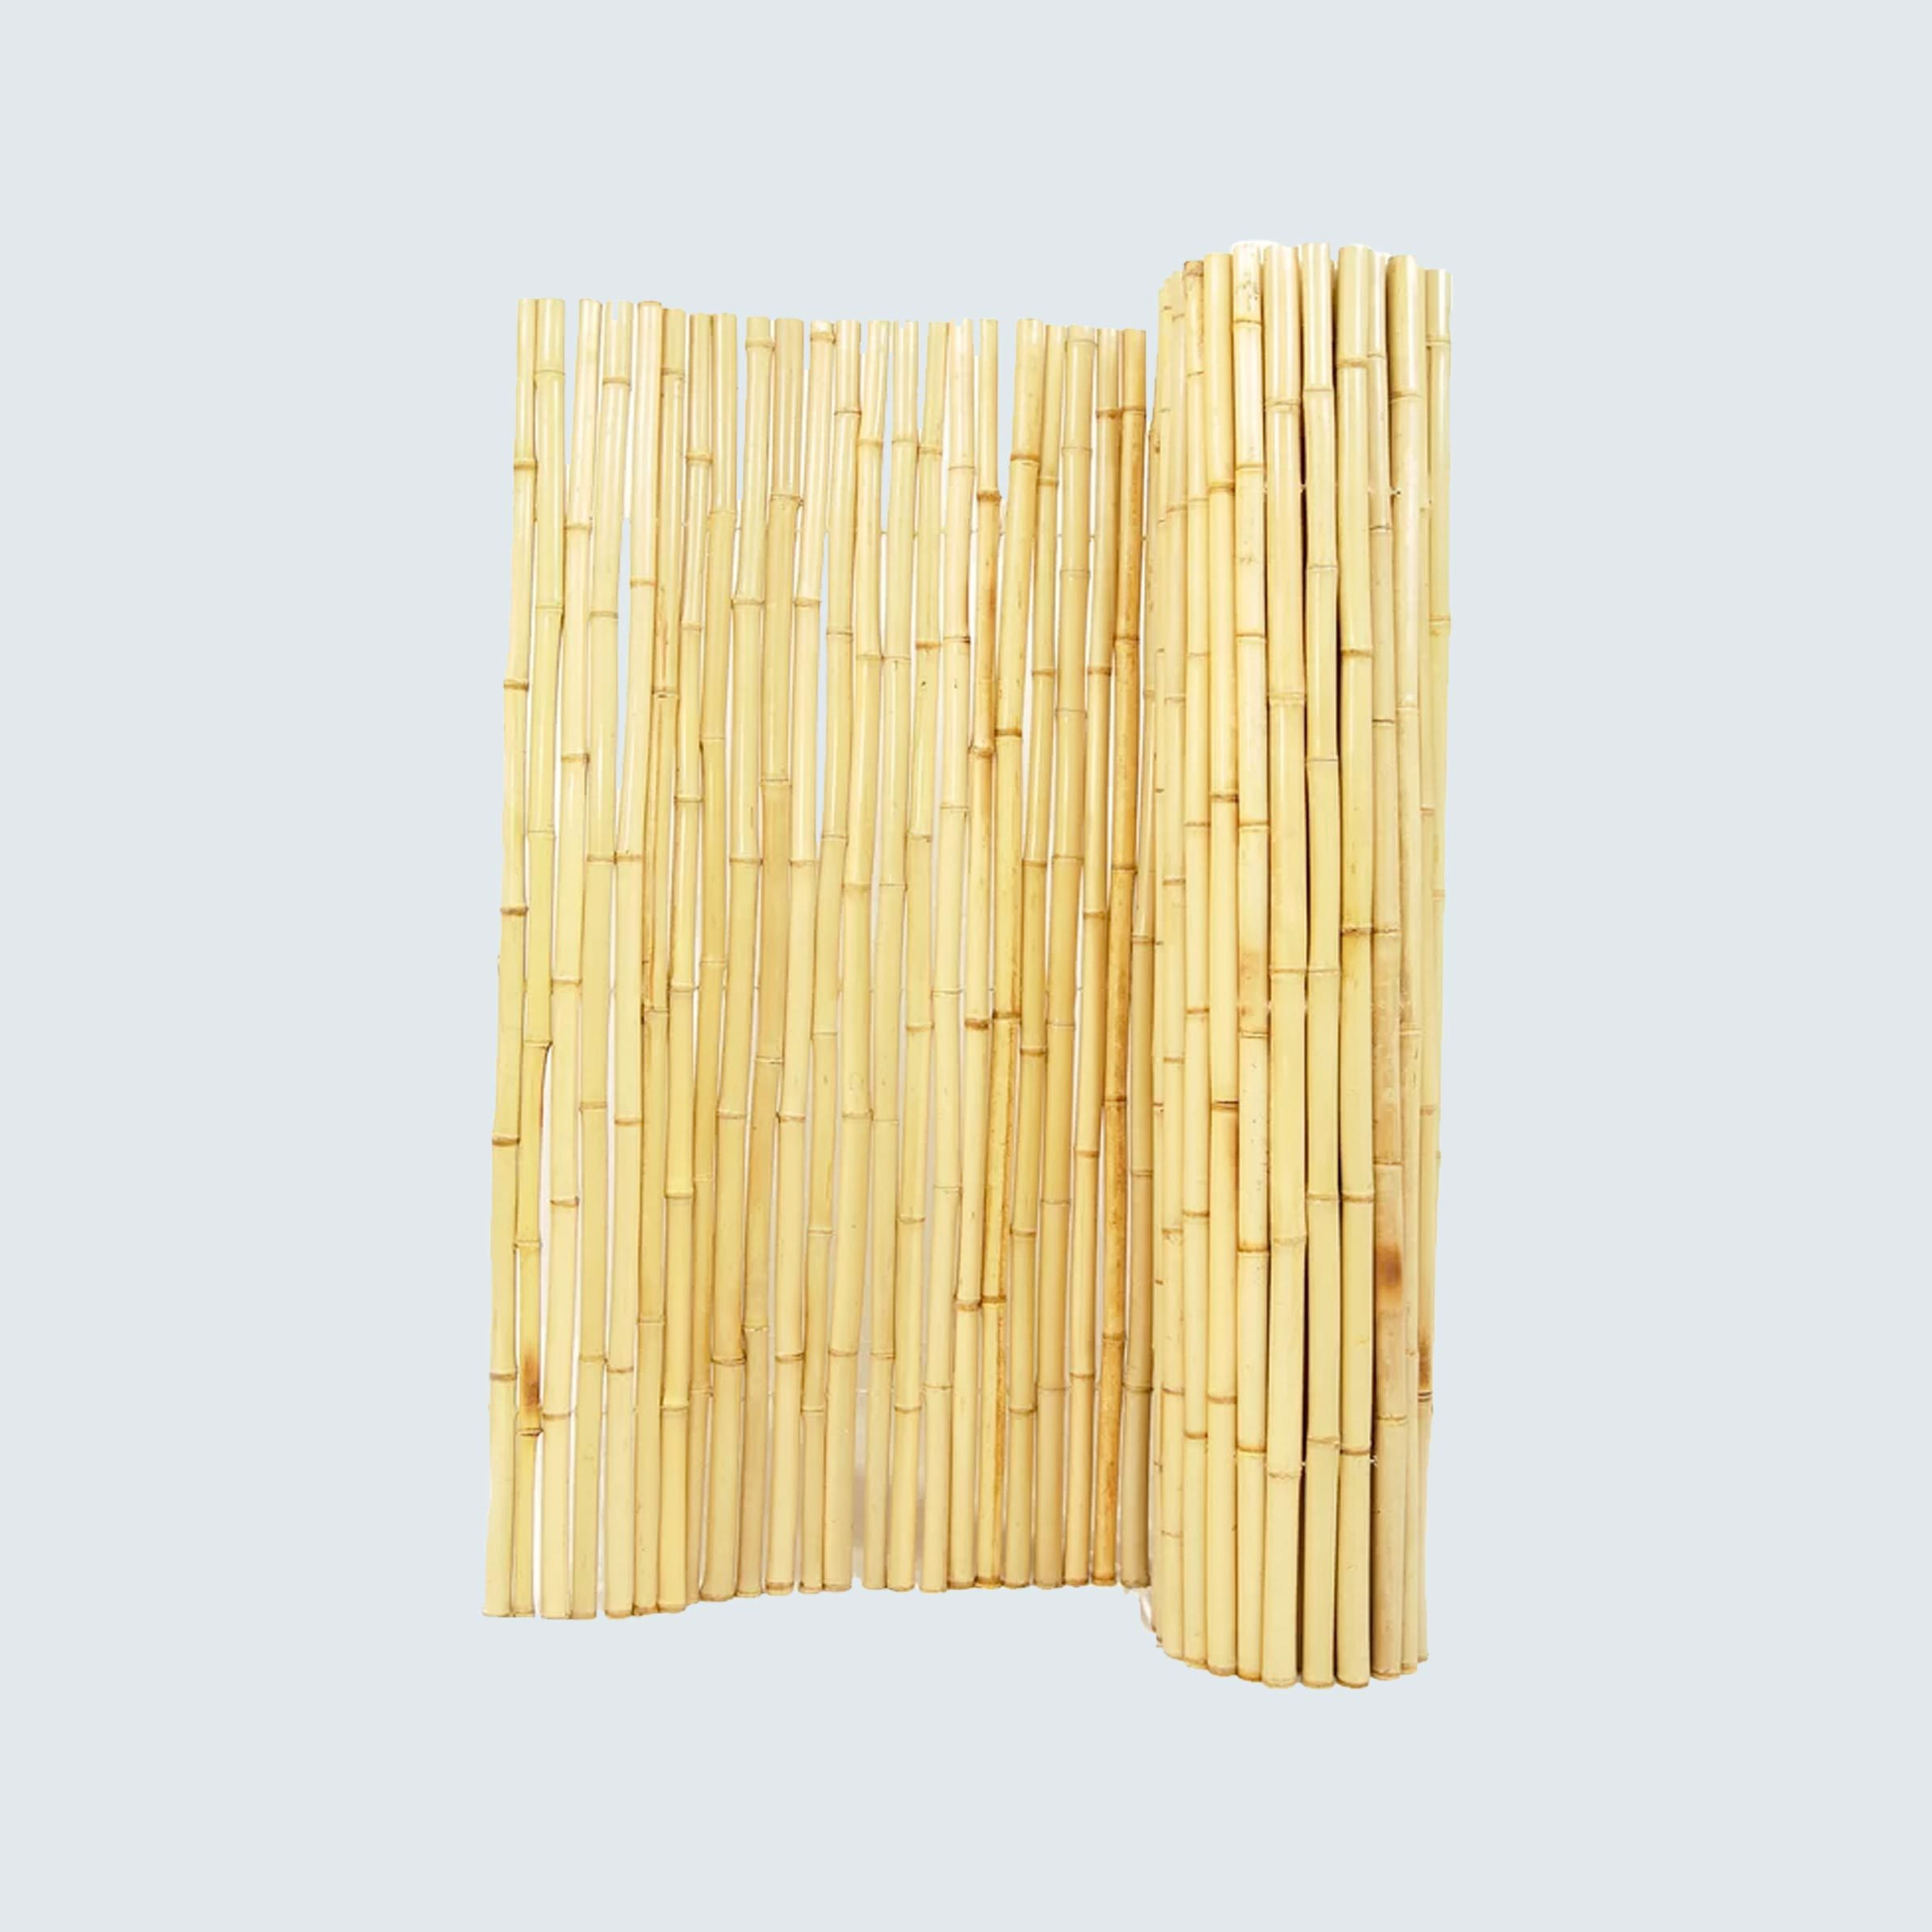 Rolled Bamboo Fence Panel